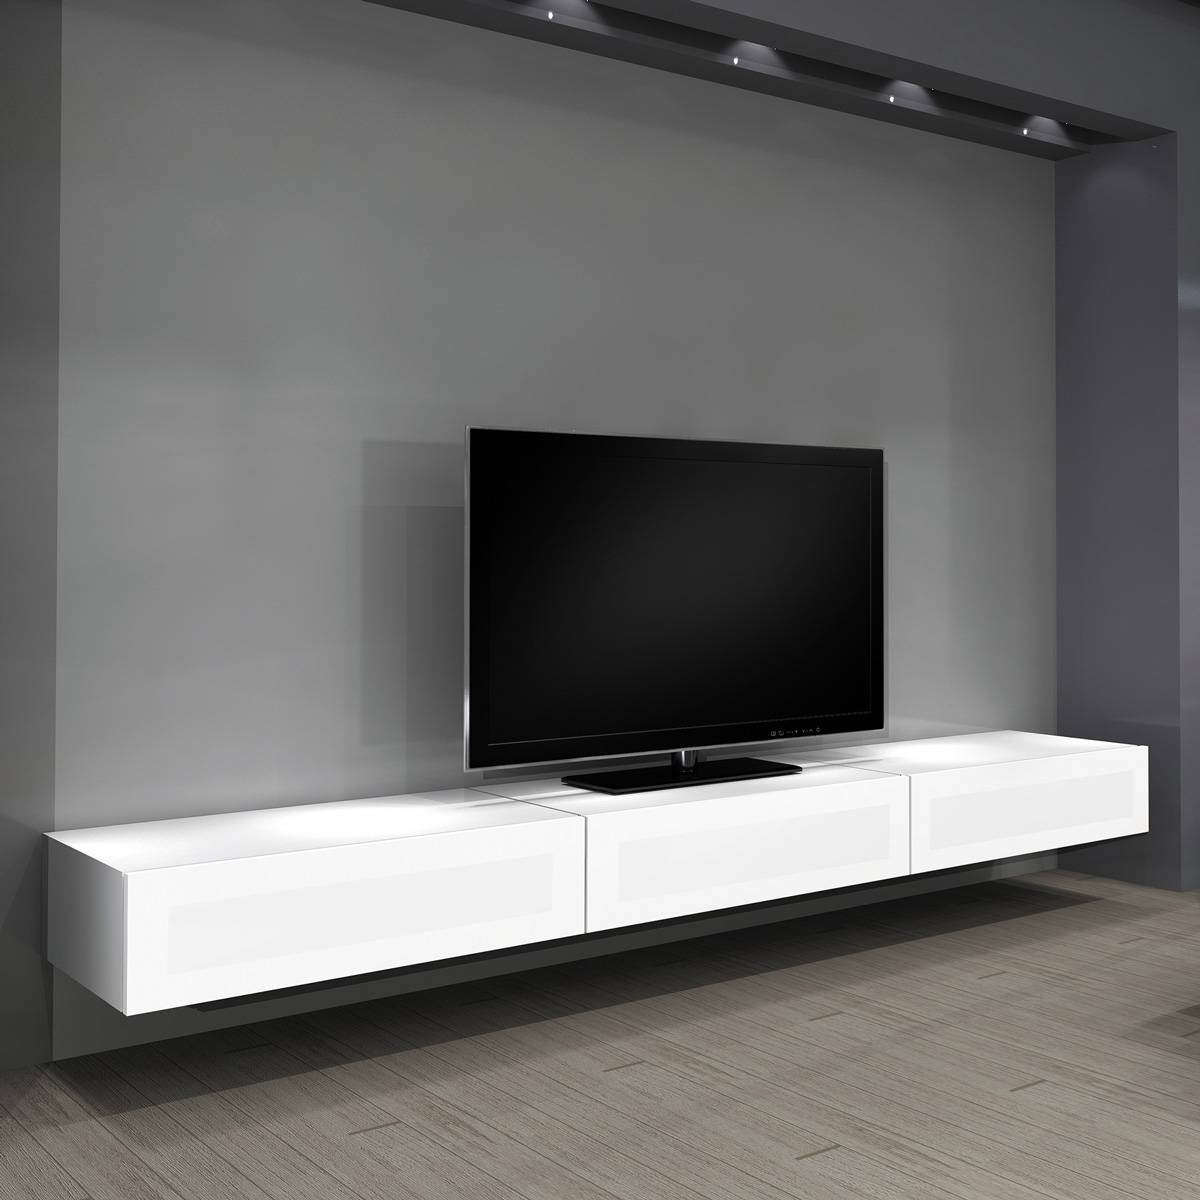 Furniture: Modern Wall Mount Entertainment Center In White With with Modern Wall Mount Tv Stands (Image 6 of 15)